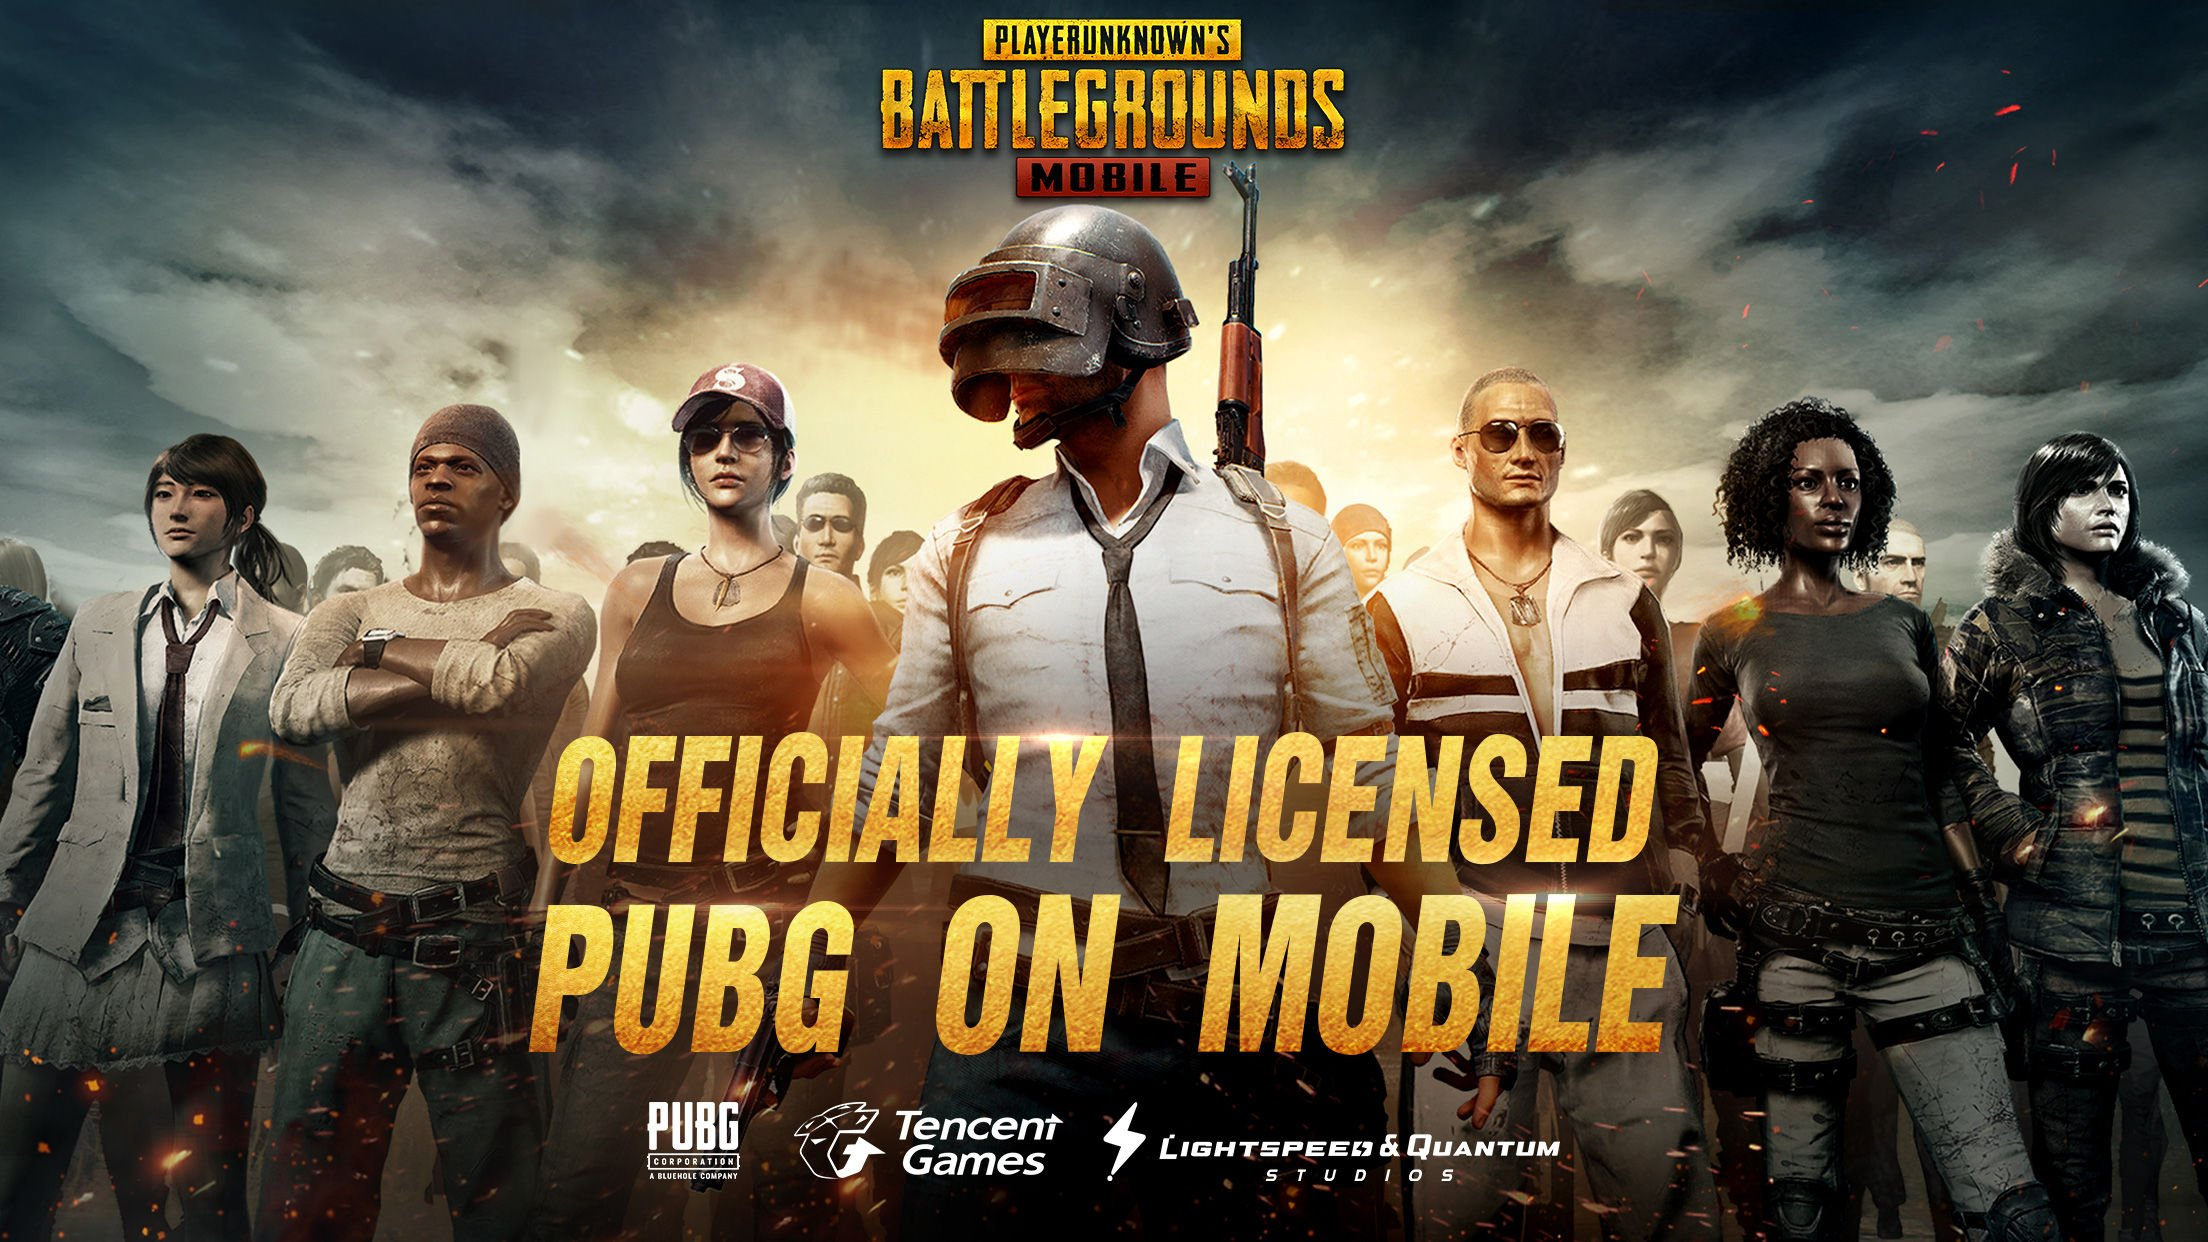 Pubg Mobile Is Already 1 In More Than 100 Countries Just Days - this news comes just 4 days after pubg mobile hit the app store and google play worldwide after a soft launch we ve been covering various battle royale